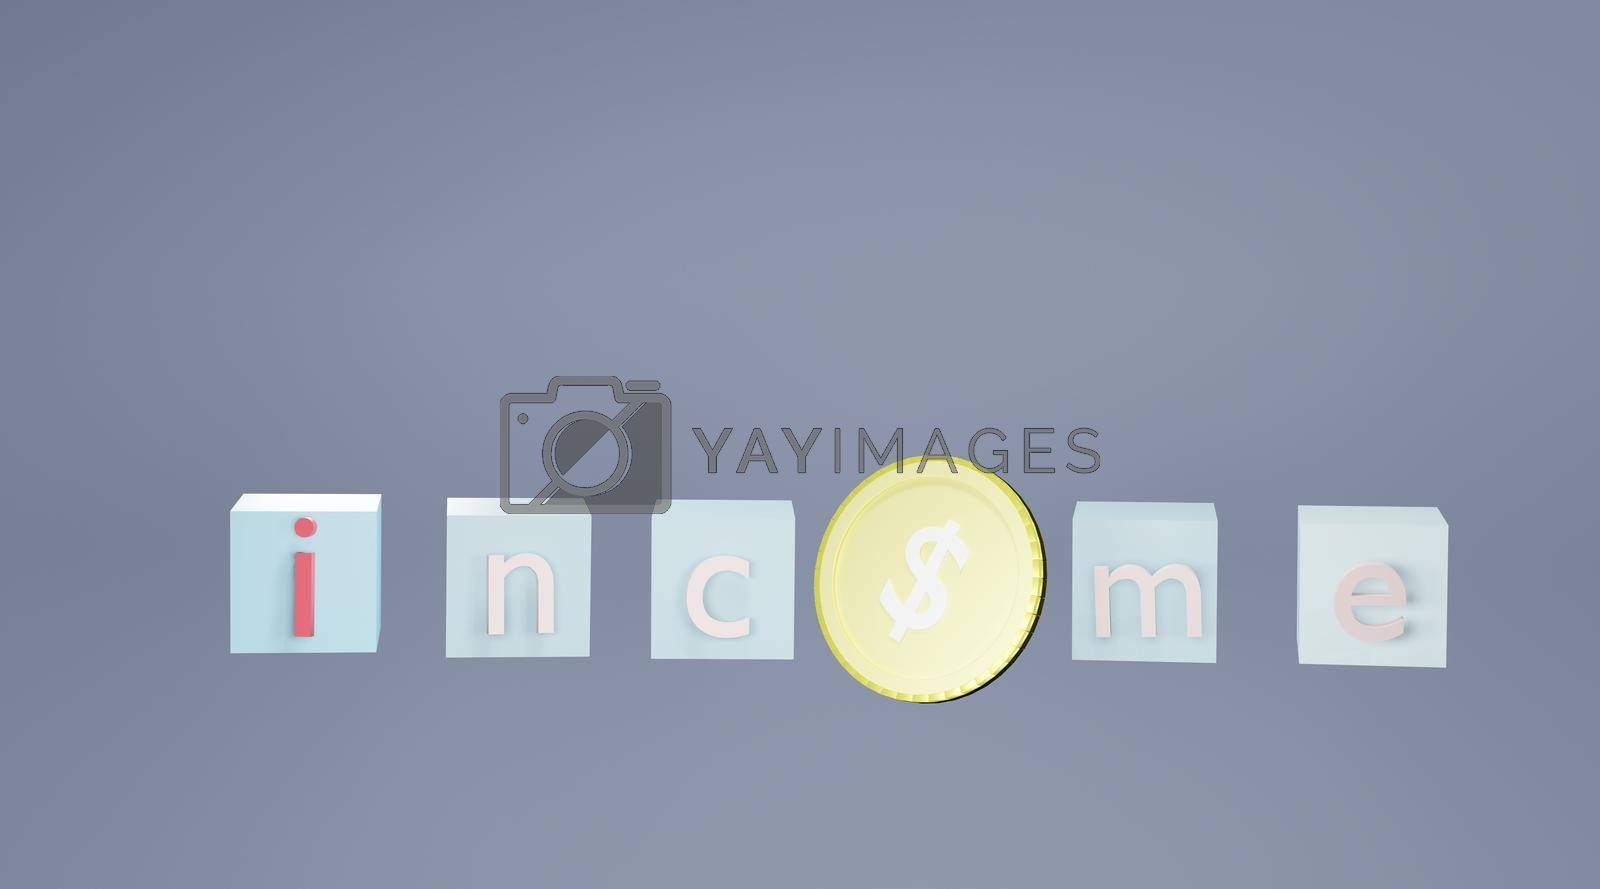 Royalty free image of Abstract text box and dollar coin Concept of investment income and financial stability 3D rendering. by noppha80